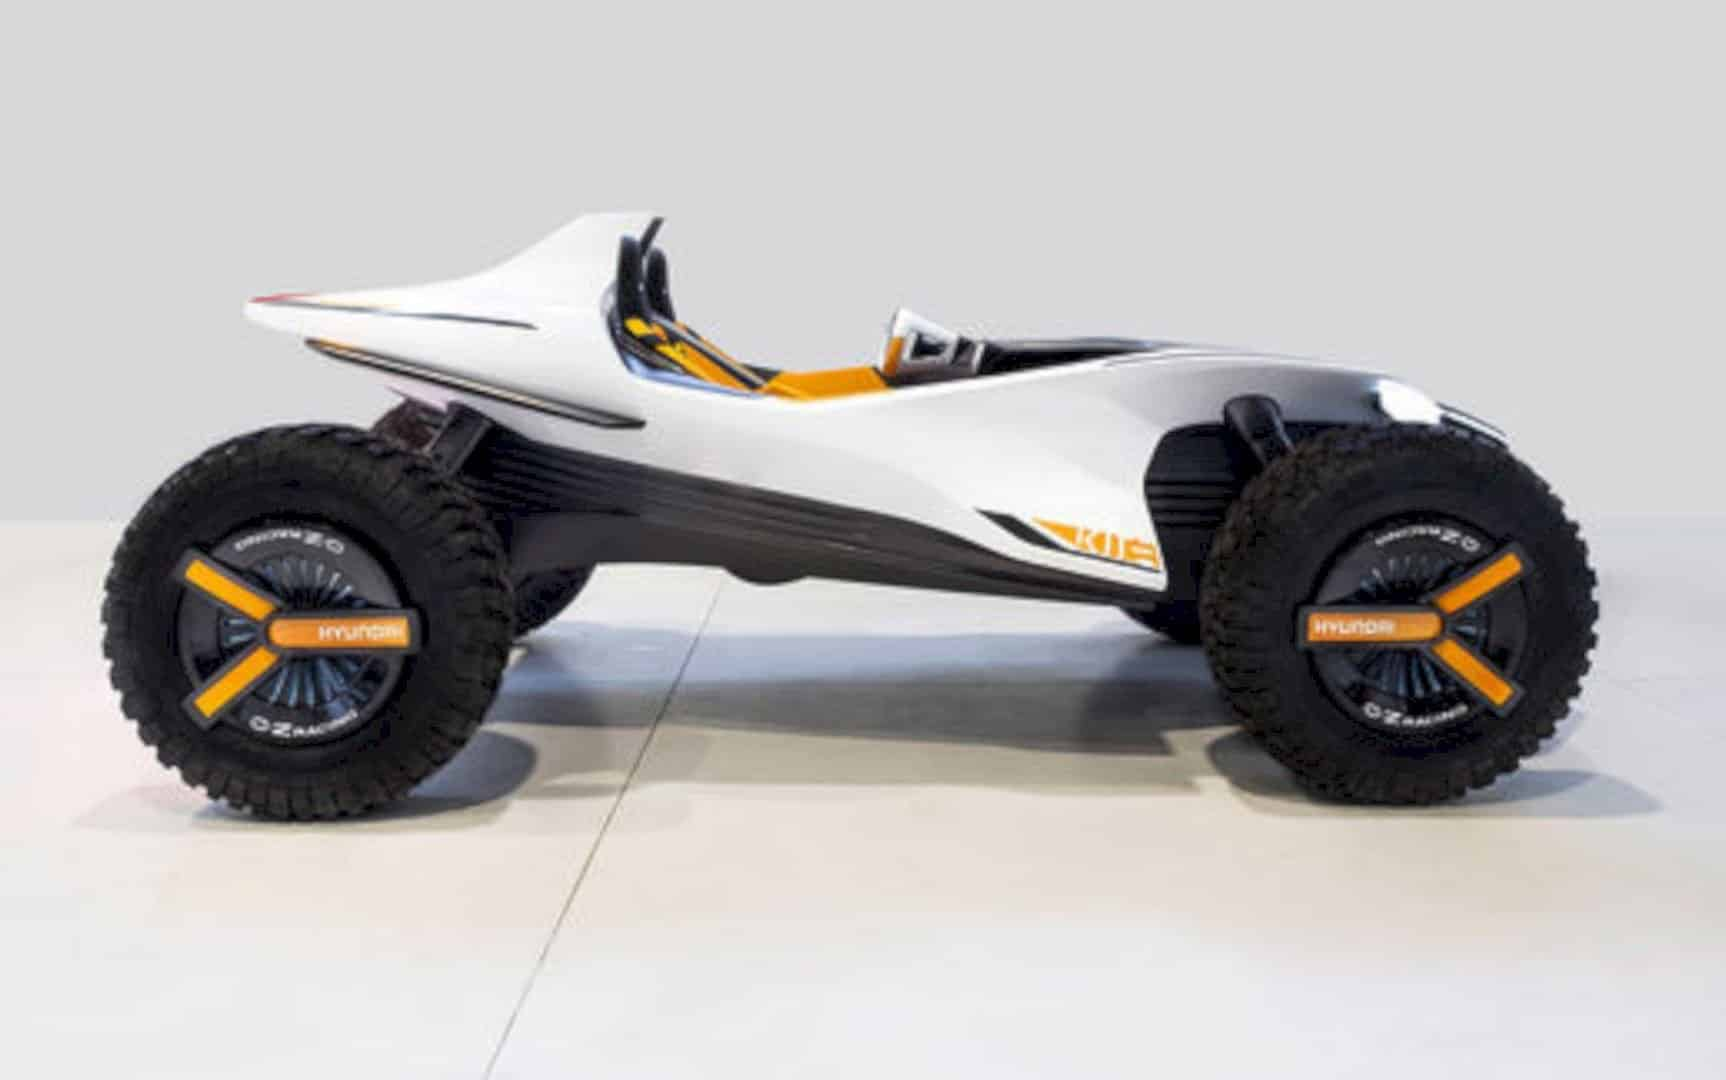 Hyundai Kite: Convertible Buggy That is Able to Switch Into Jet Ski